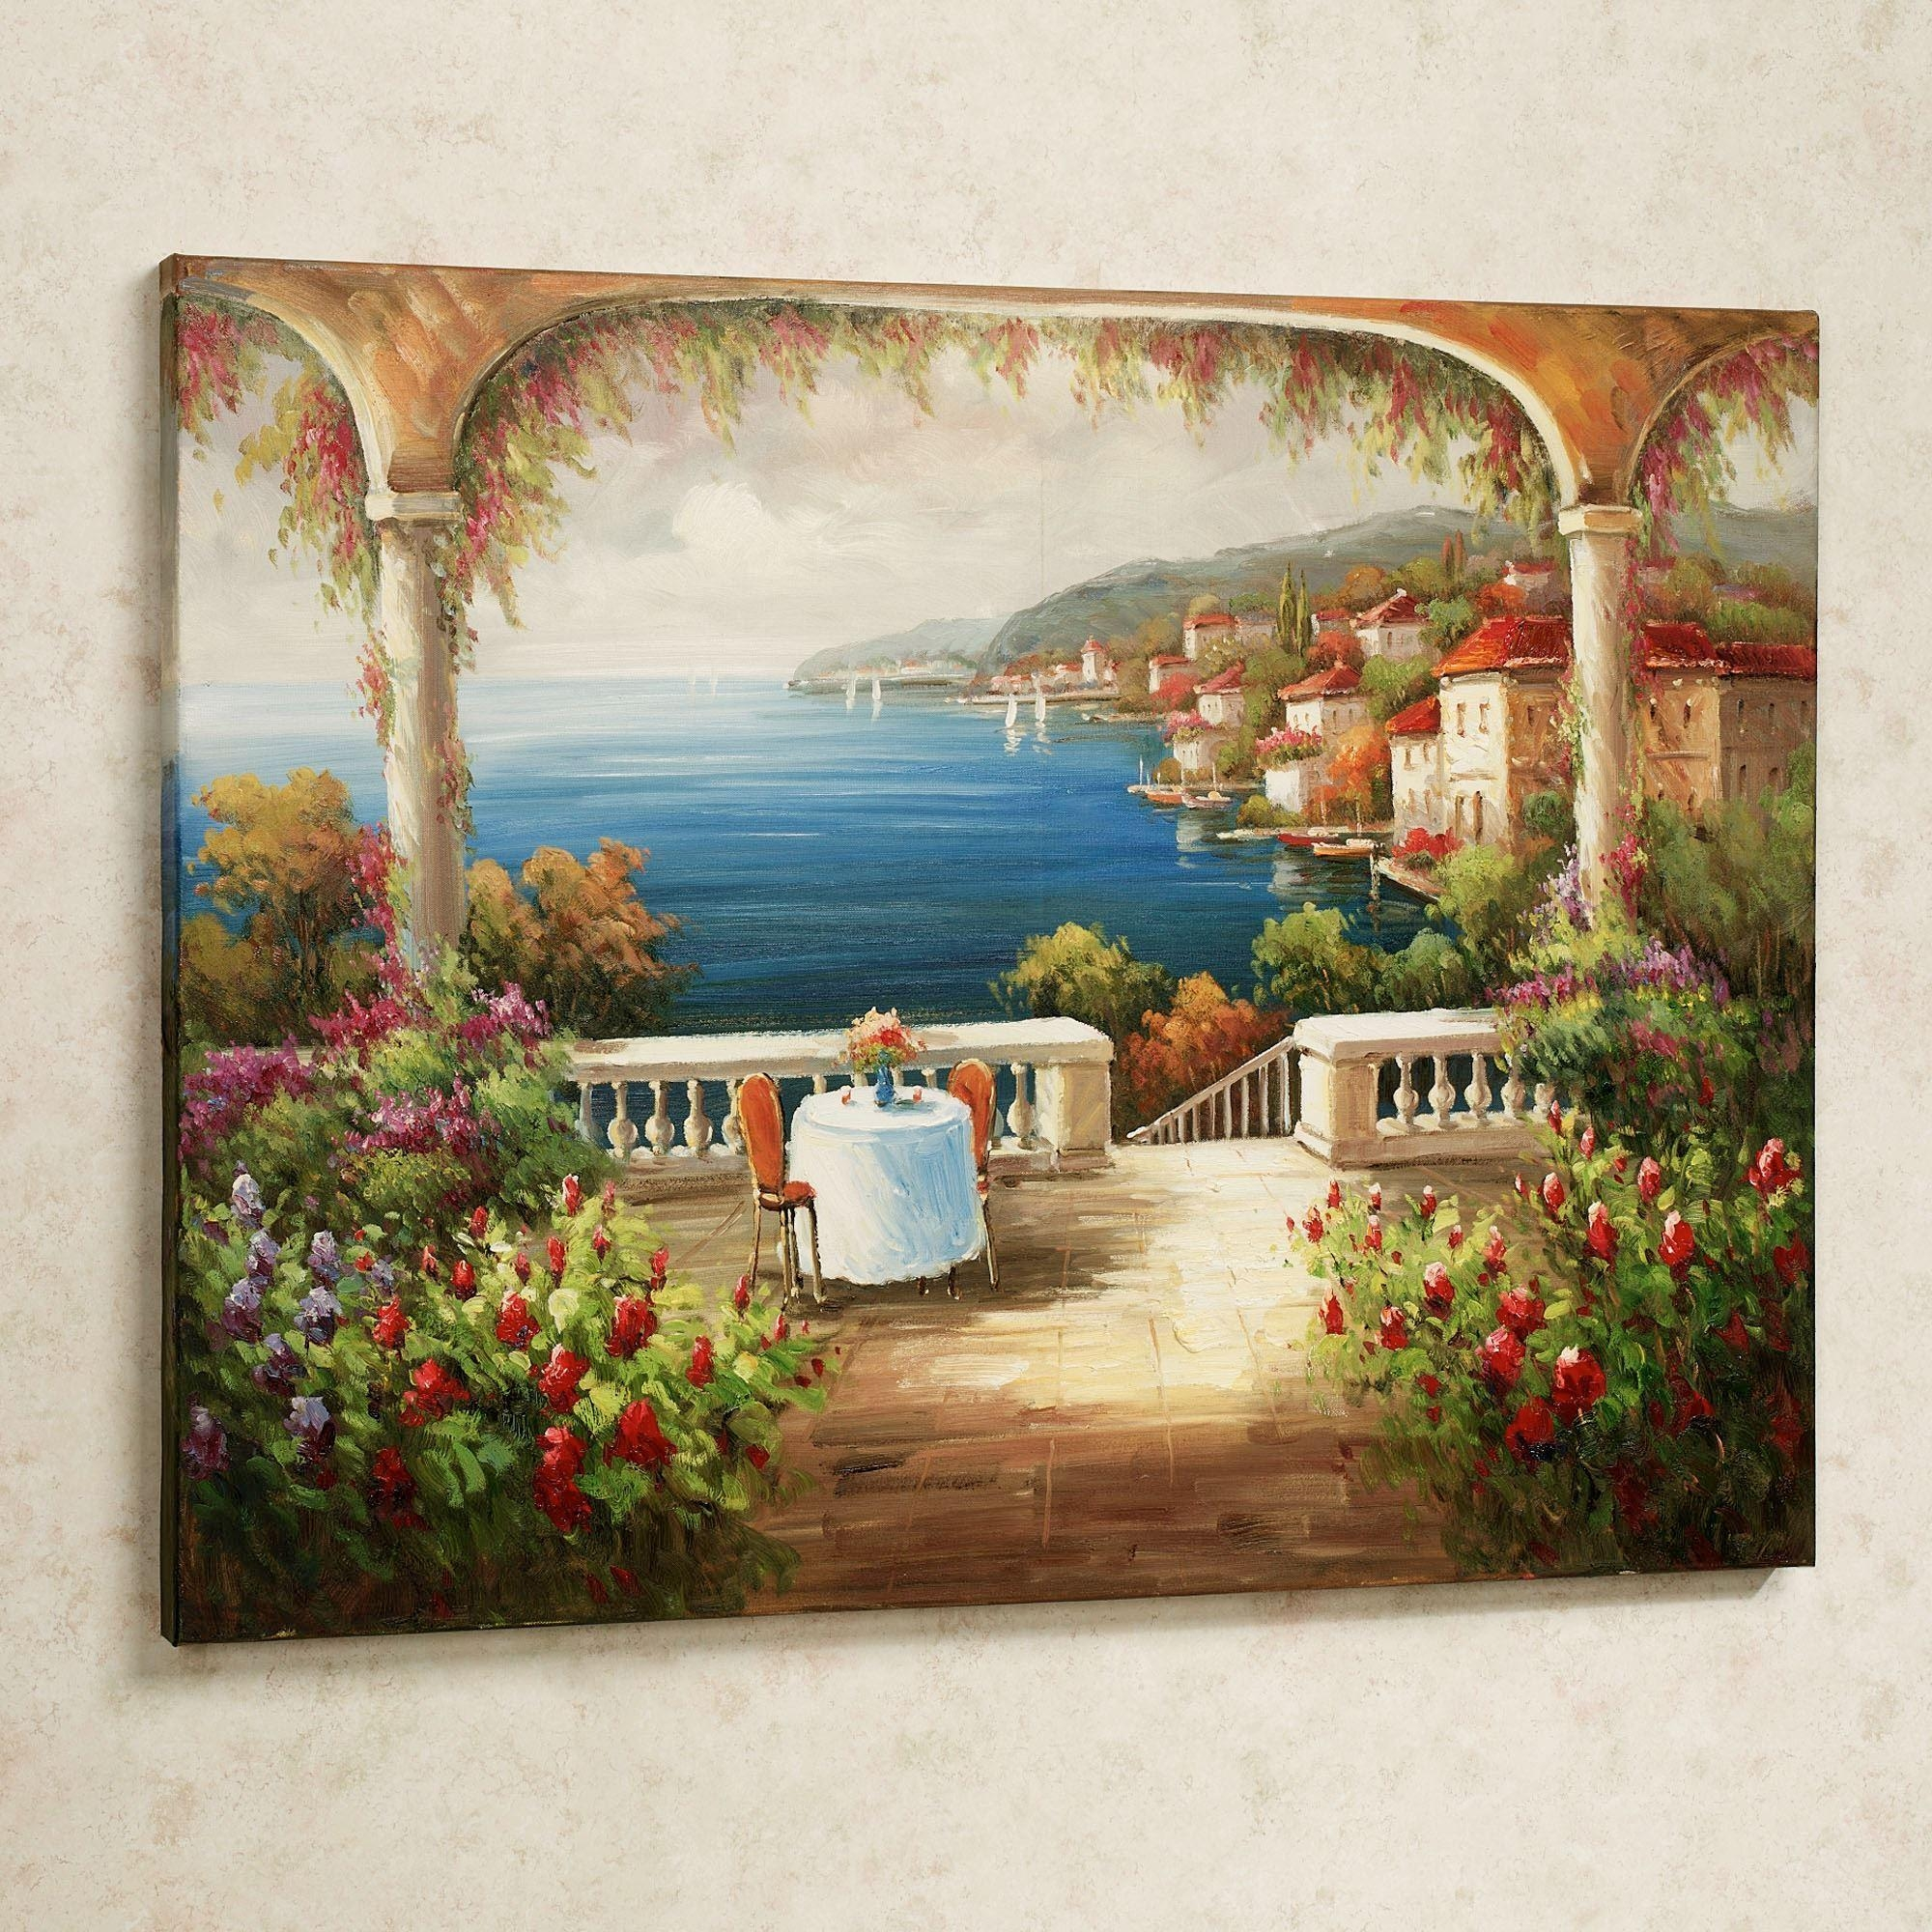 Living Room Wall Decor Tags : Awesome Kitchen Artwork Design Regarding Italian Themed Wall Art (View 8 of 20)